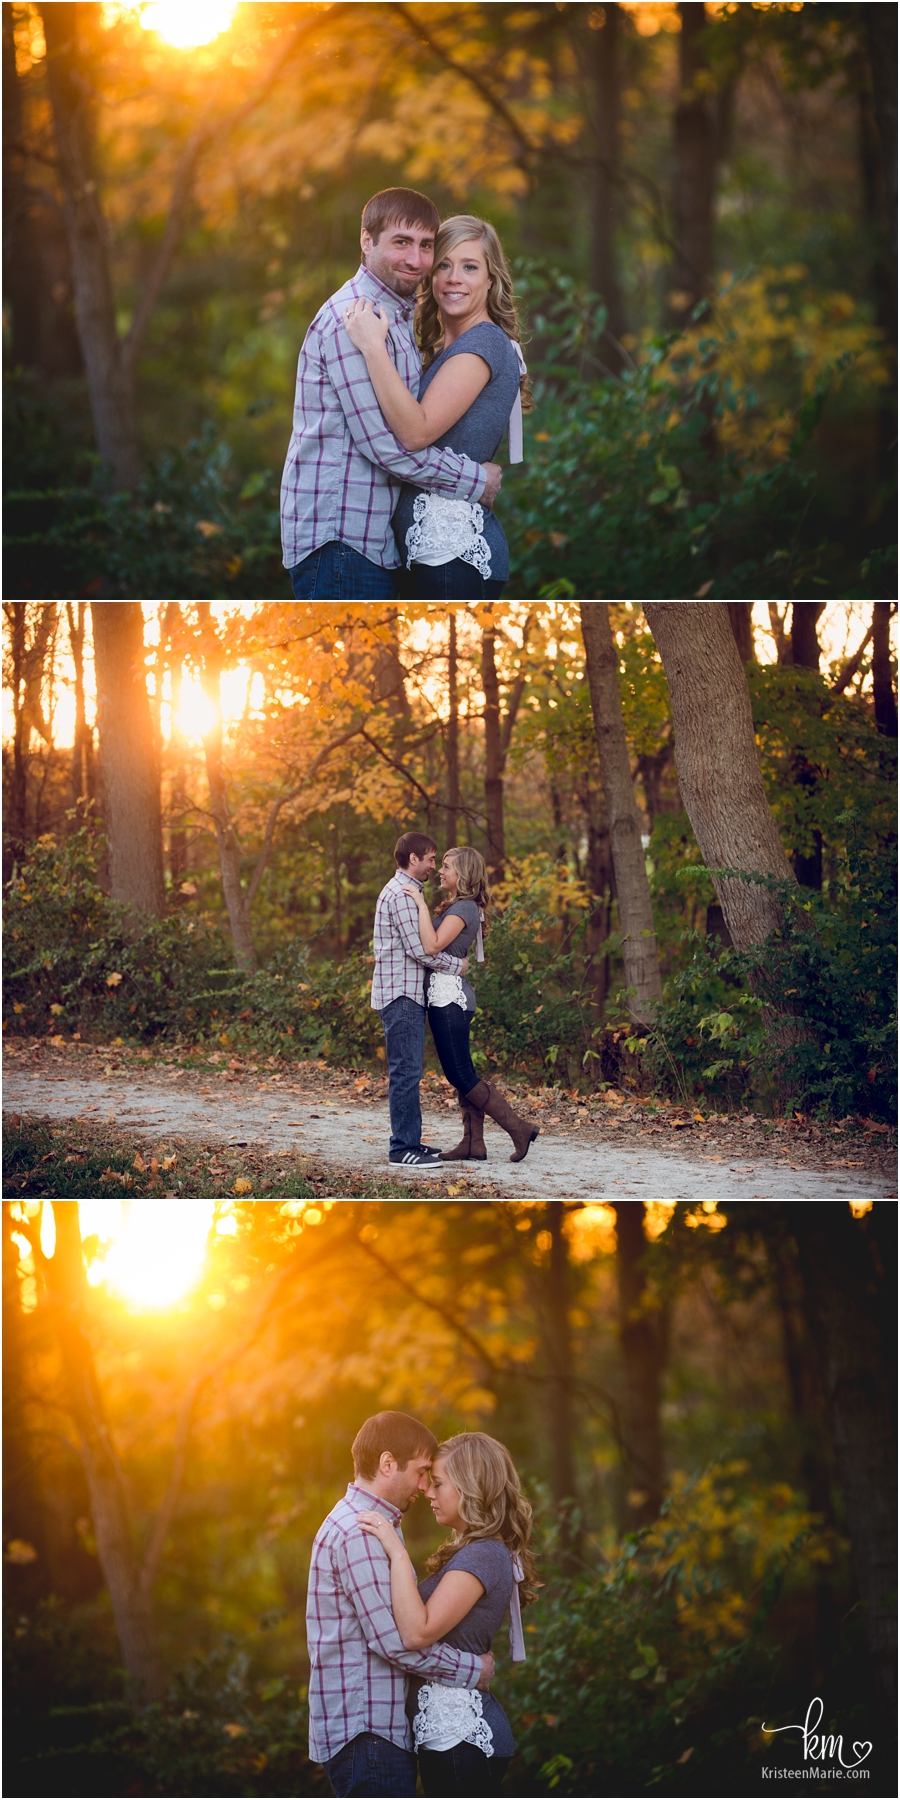 sunset - golden hour is the best time for outdoor pictures